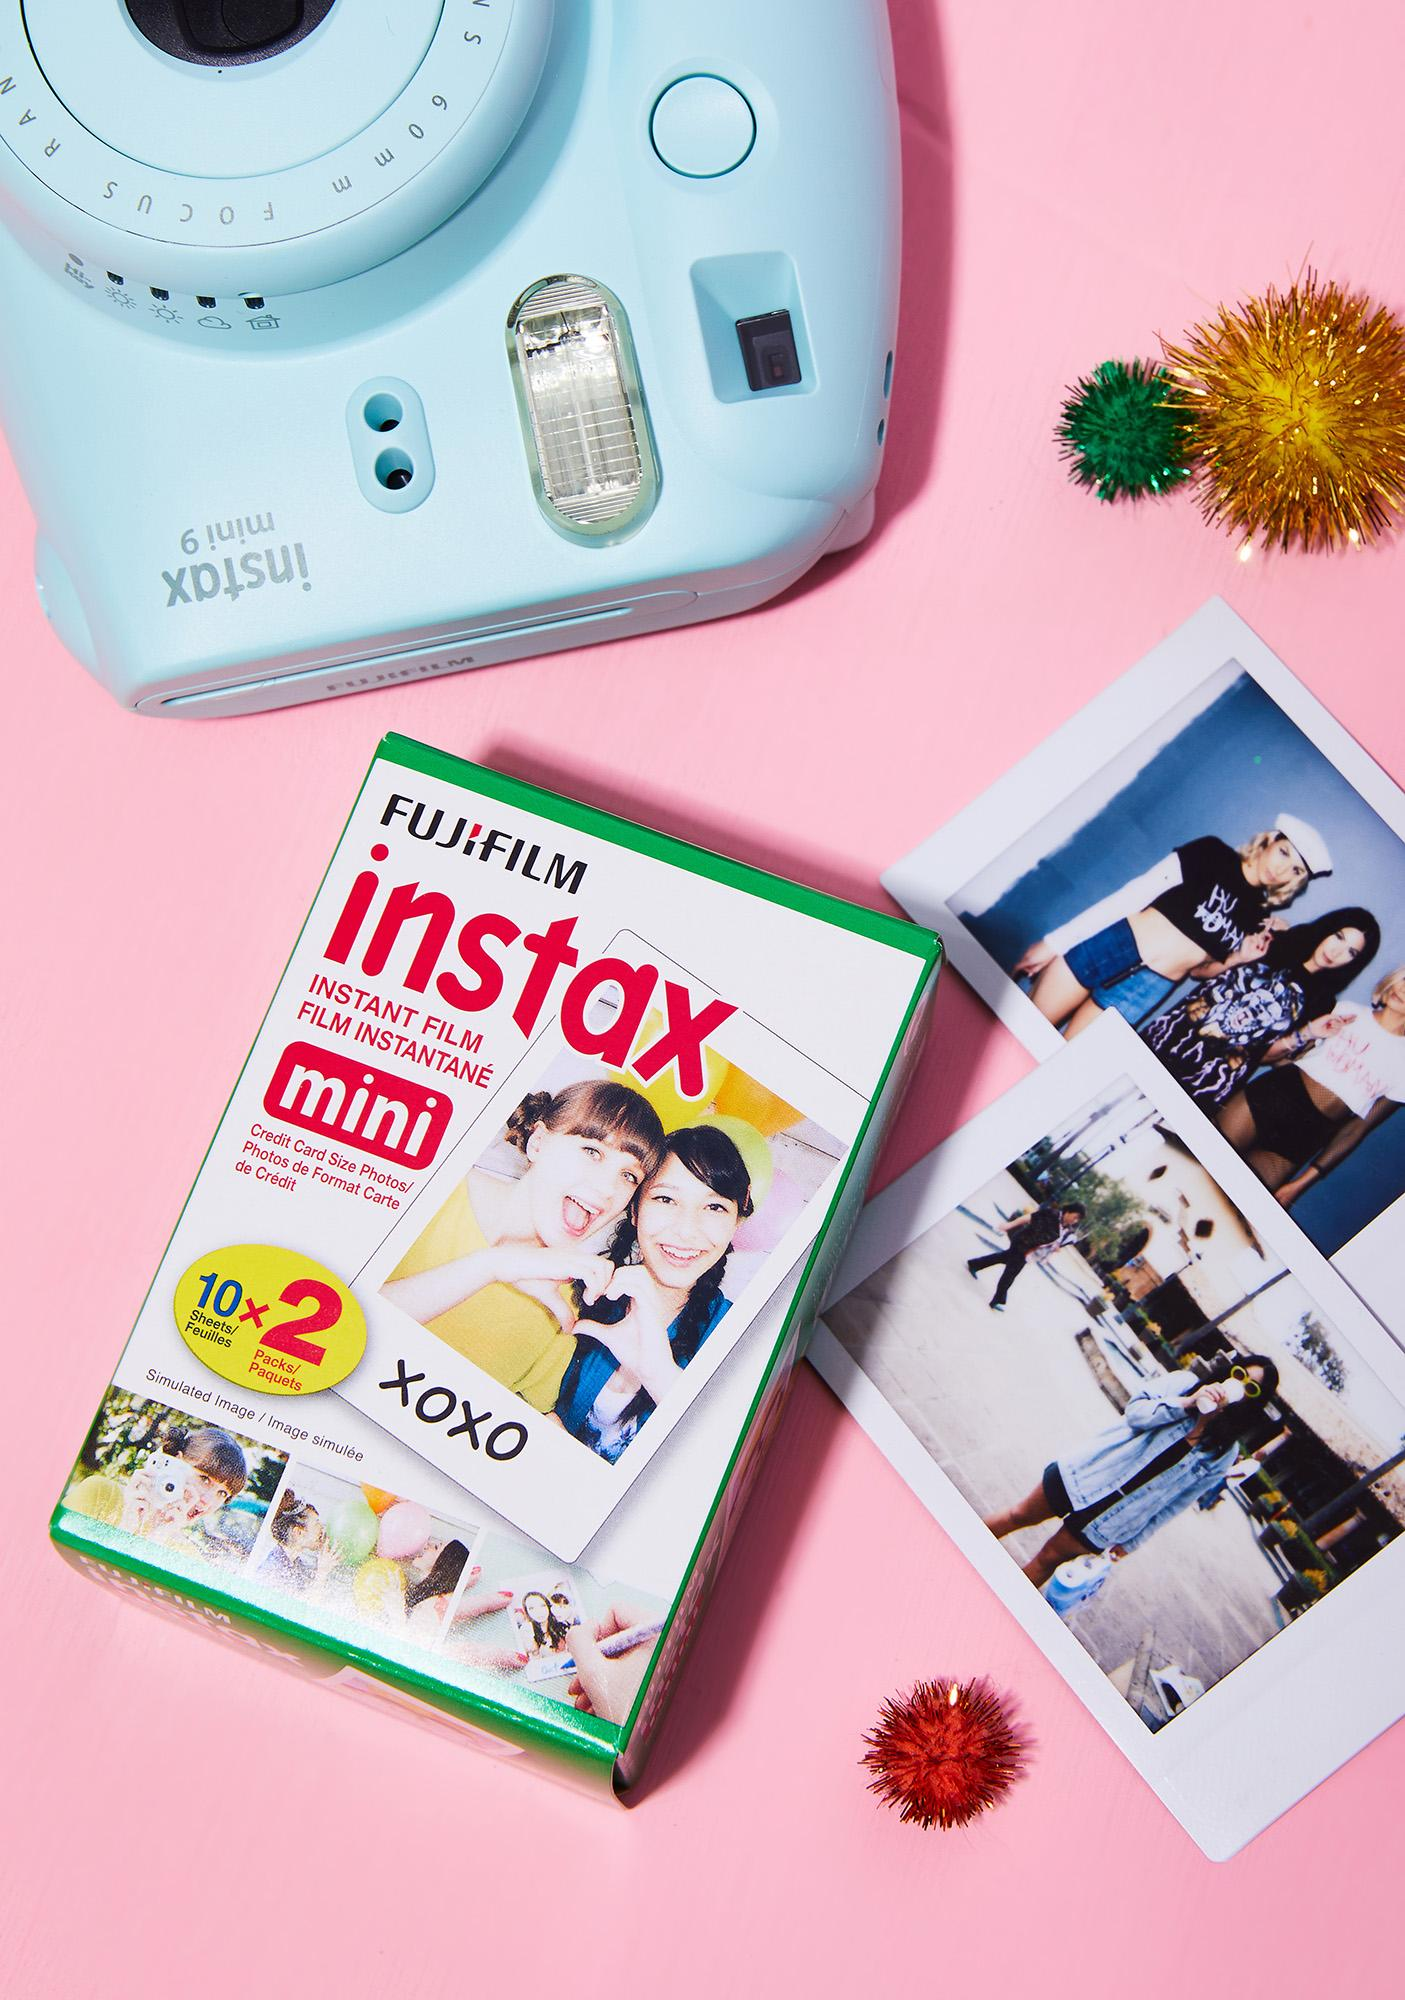 Fujifilm Mini Twin Film Pack